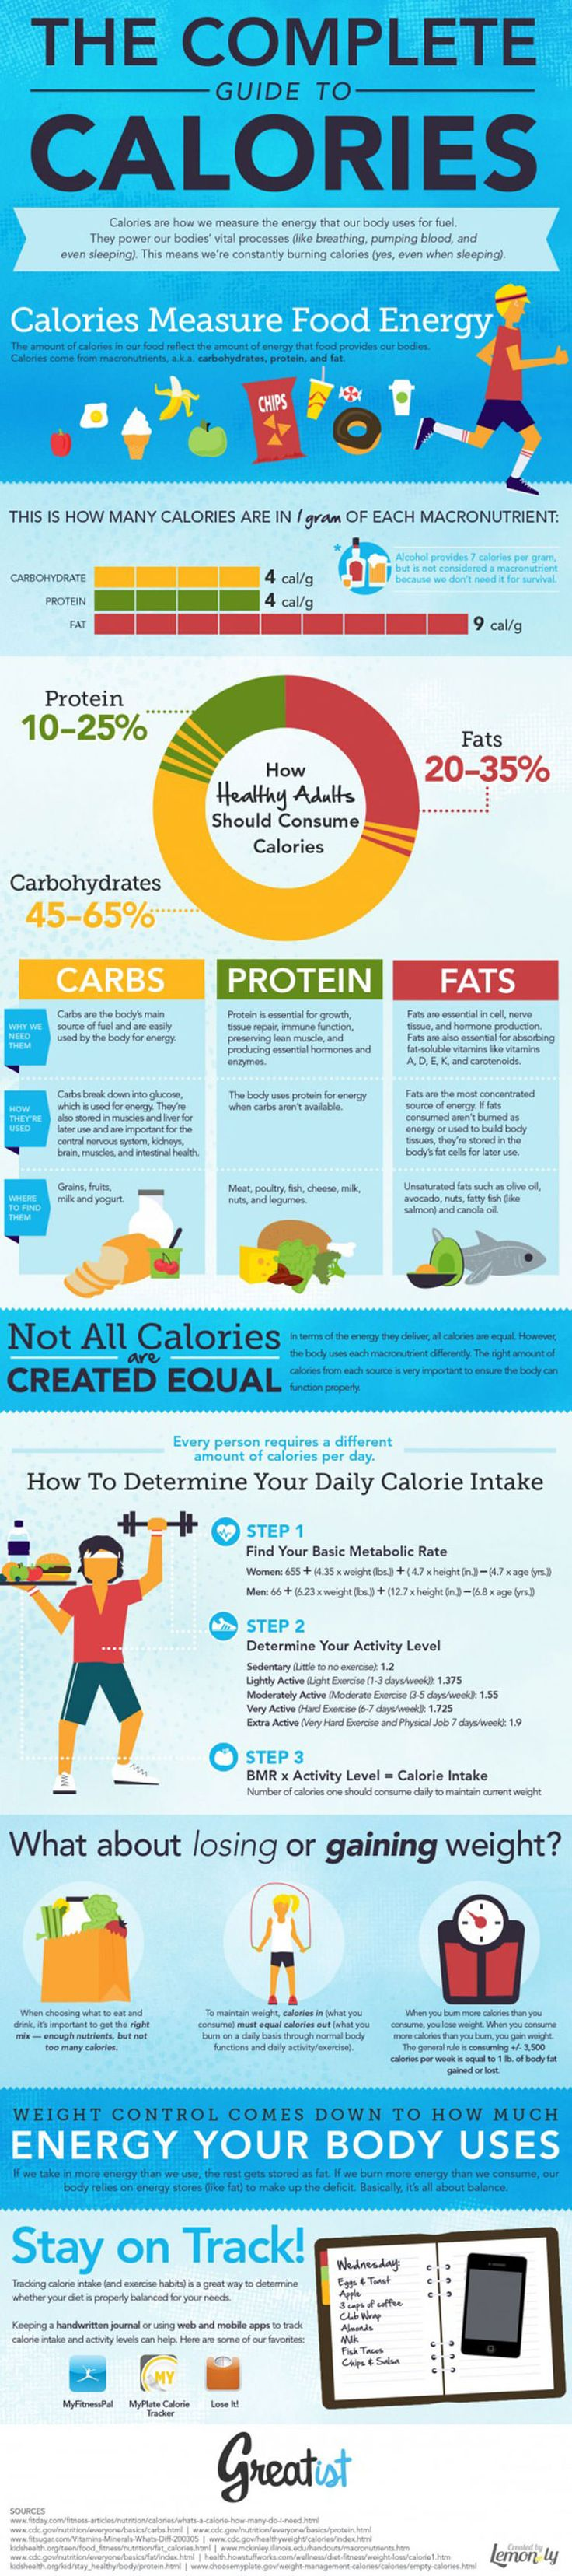 food calorie calculator to lose weight